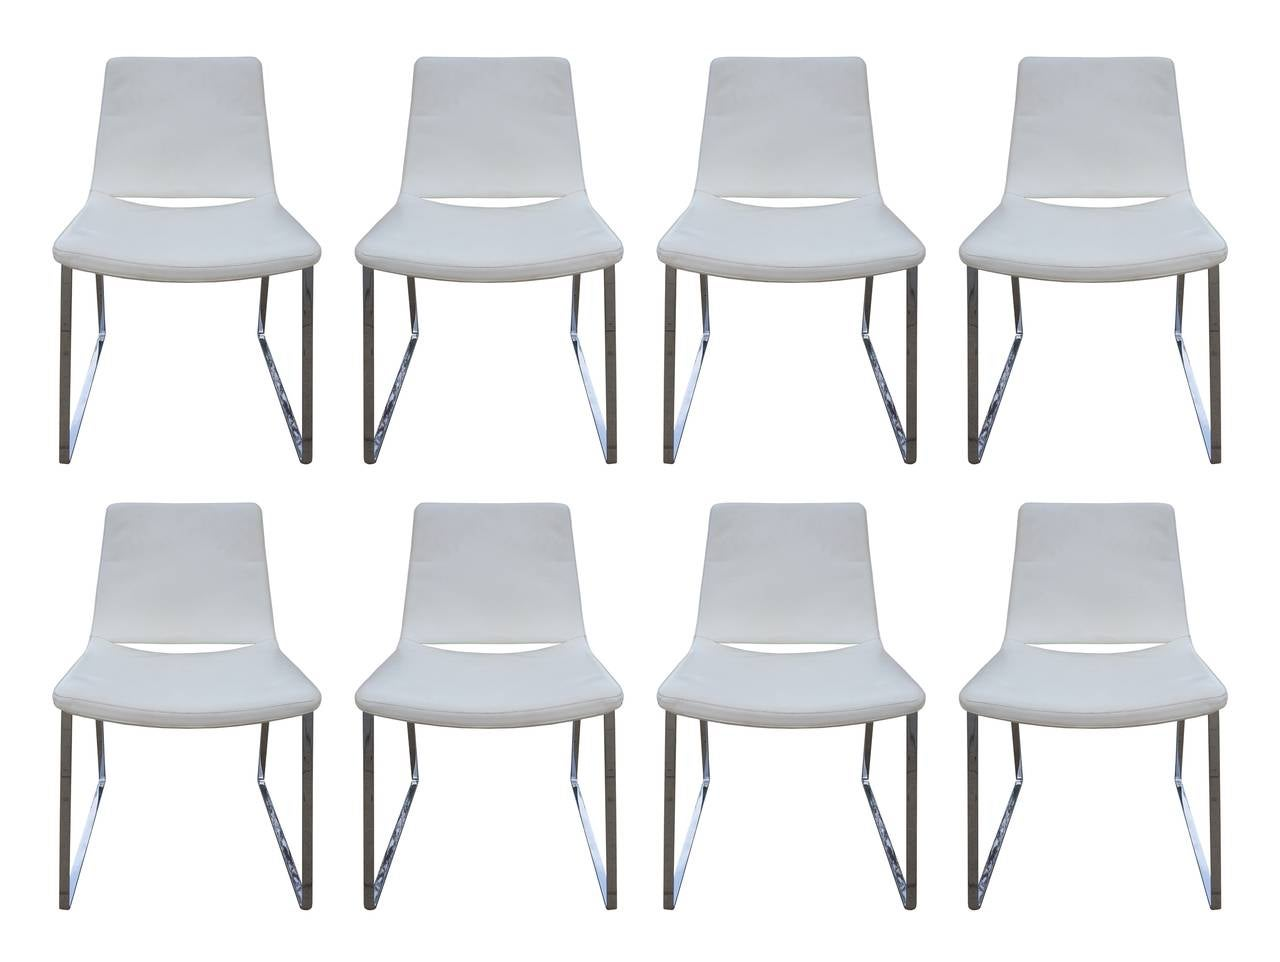 Beautiful set of eight dining chairs in white leather designed by Jeffrey Bernett and part of his ME-48 Metropolitan line.